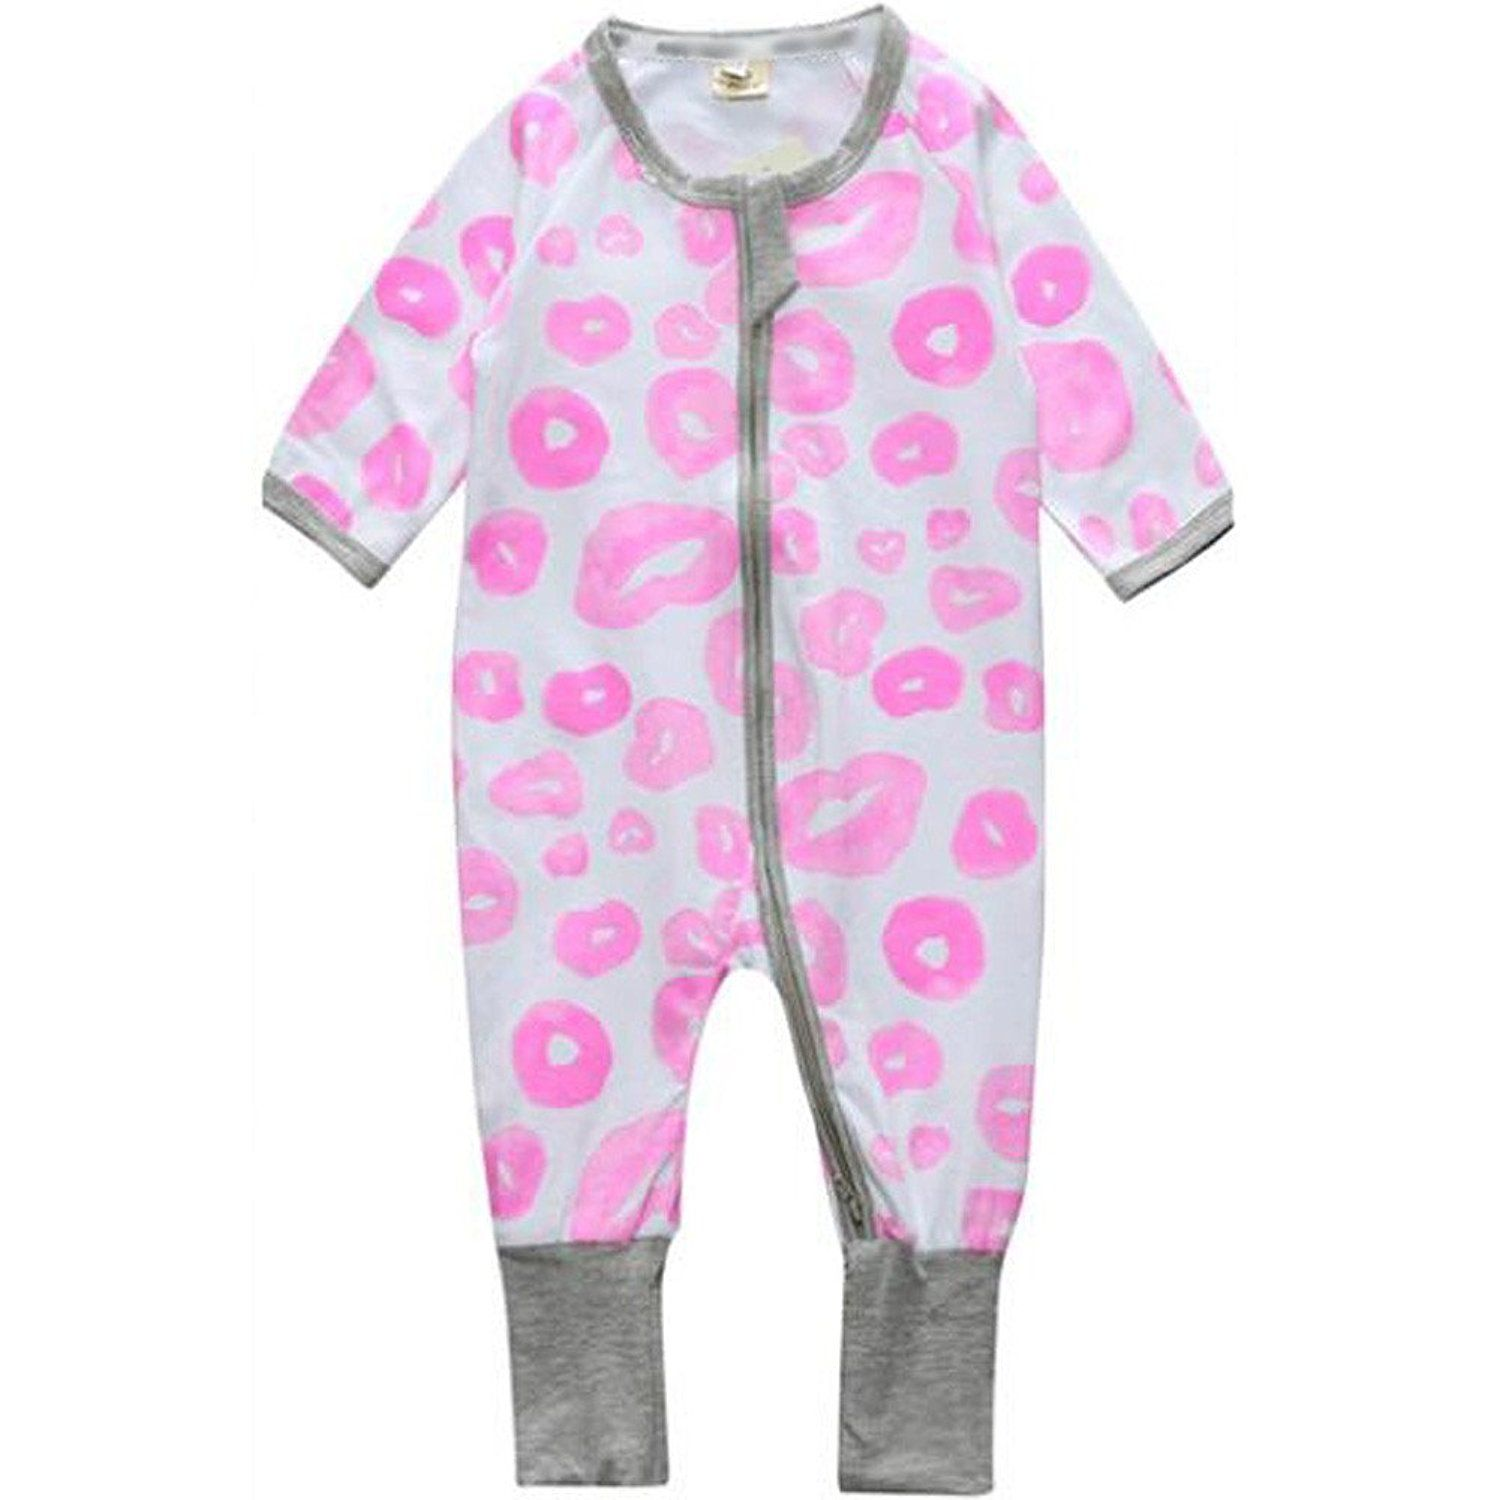 fe6cf6f92 Unisex Baby Girl Boys One Piece Zipper Jumpsuit Snug Fit Cotton Footless  Pajamas Pink Star Print